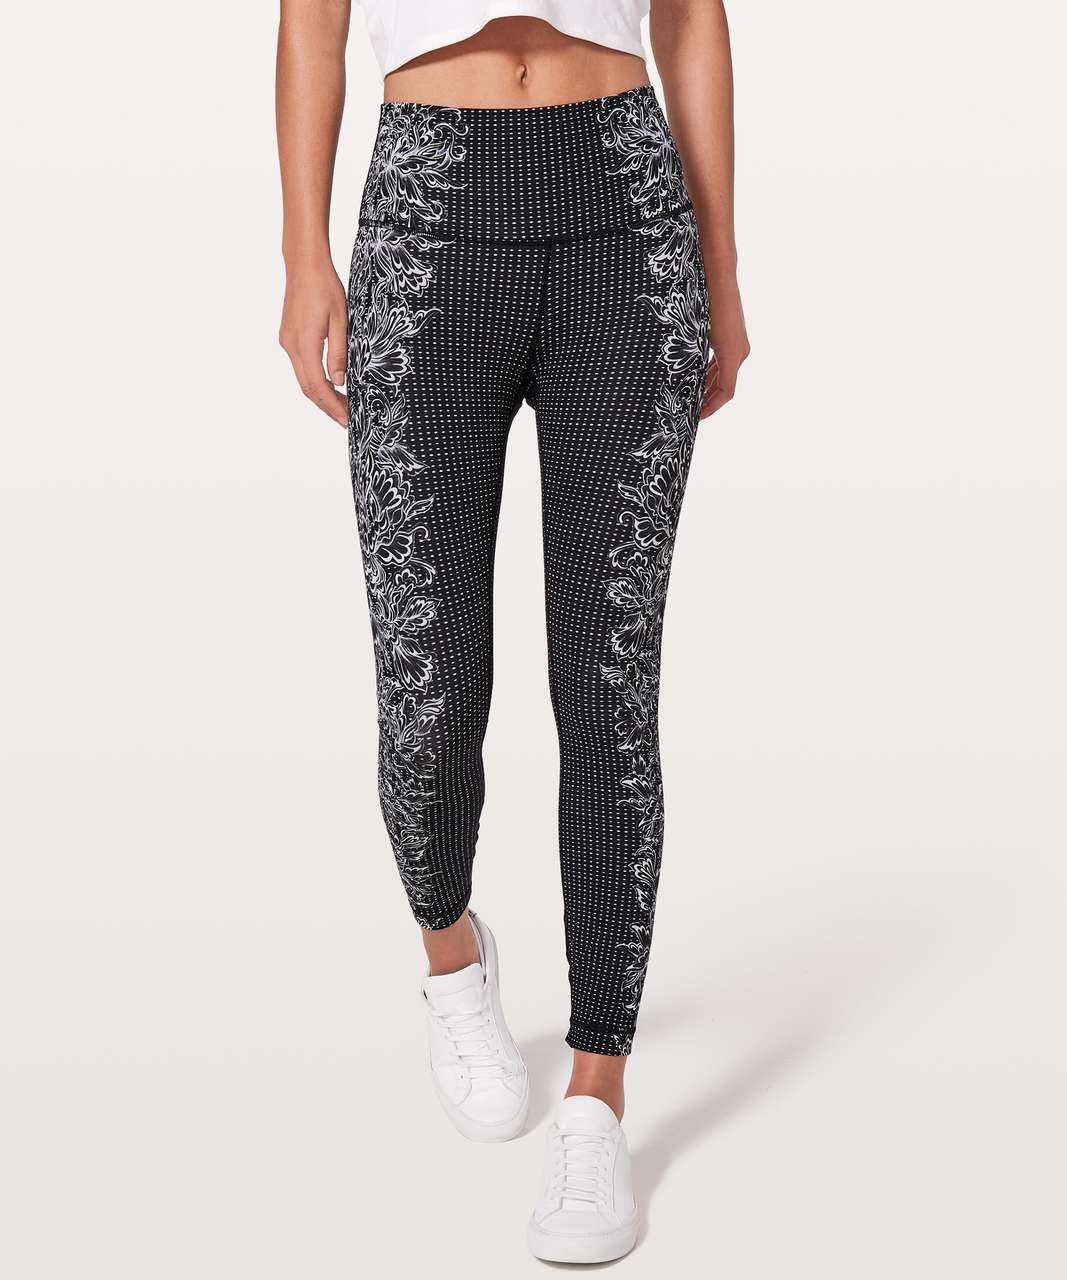 "Lululemon Wunder Under Hi-Rise 7/8 Tight *Engineered Print Full-On Luxtreme 25"" - Infinity Wunder Under 25"" Alpine White Black"